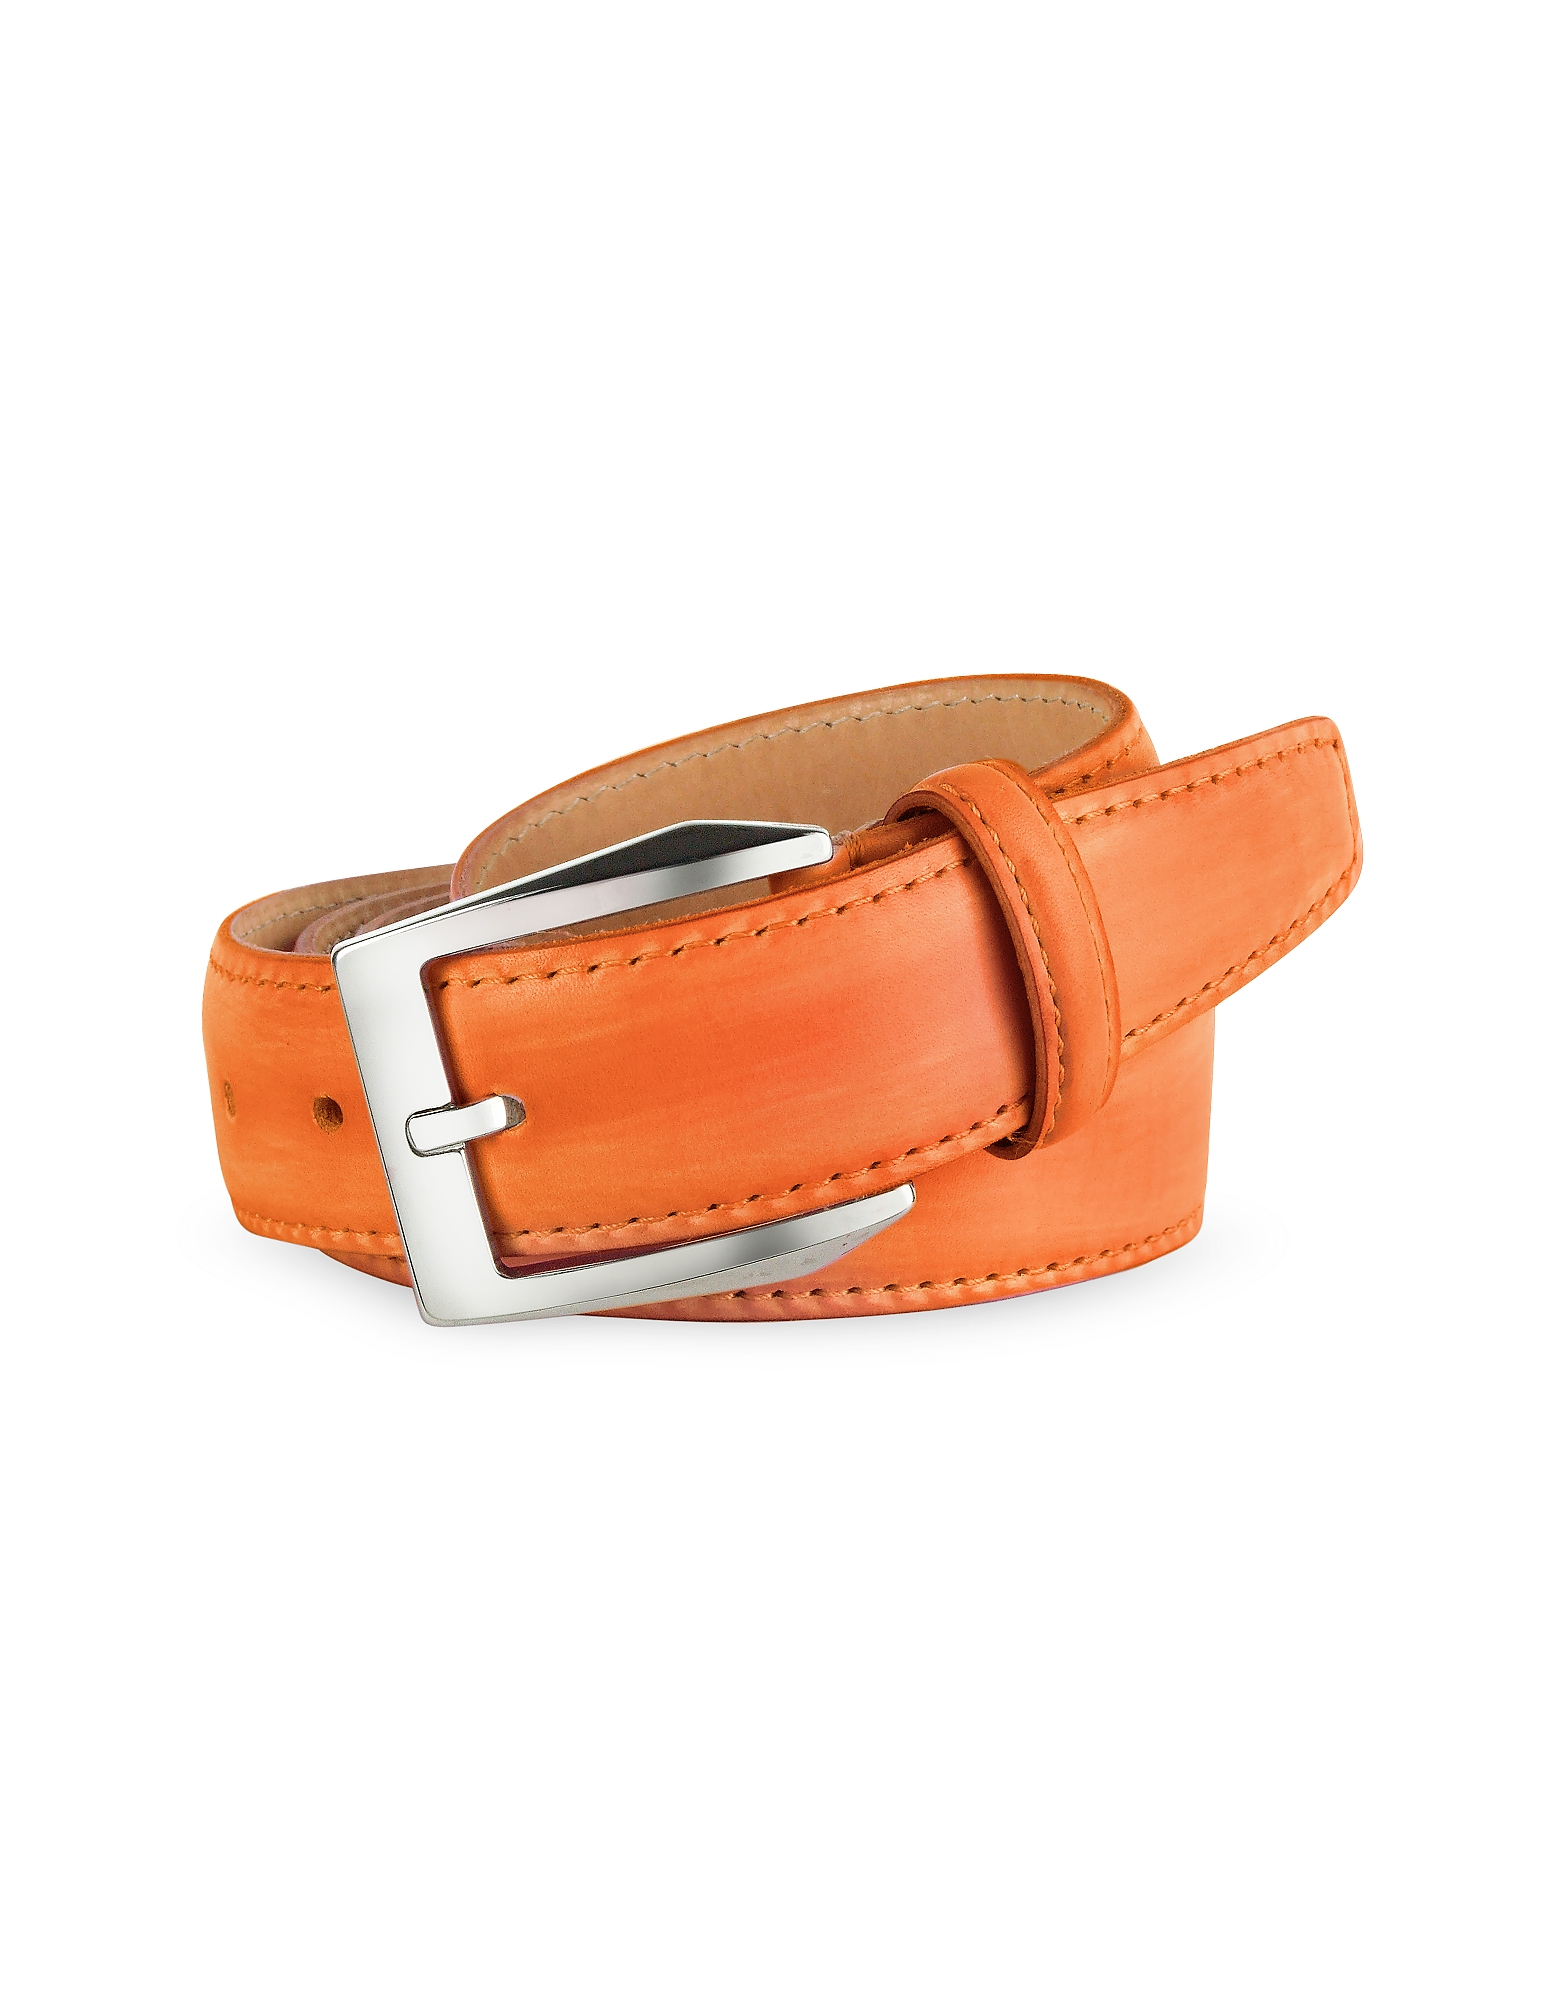 Pakerson Men's Belts, Men's Orange Hand Painted Italian Leather Belt